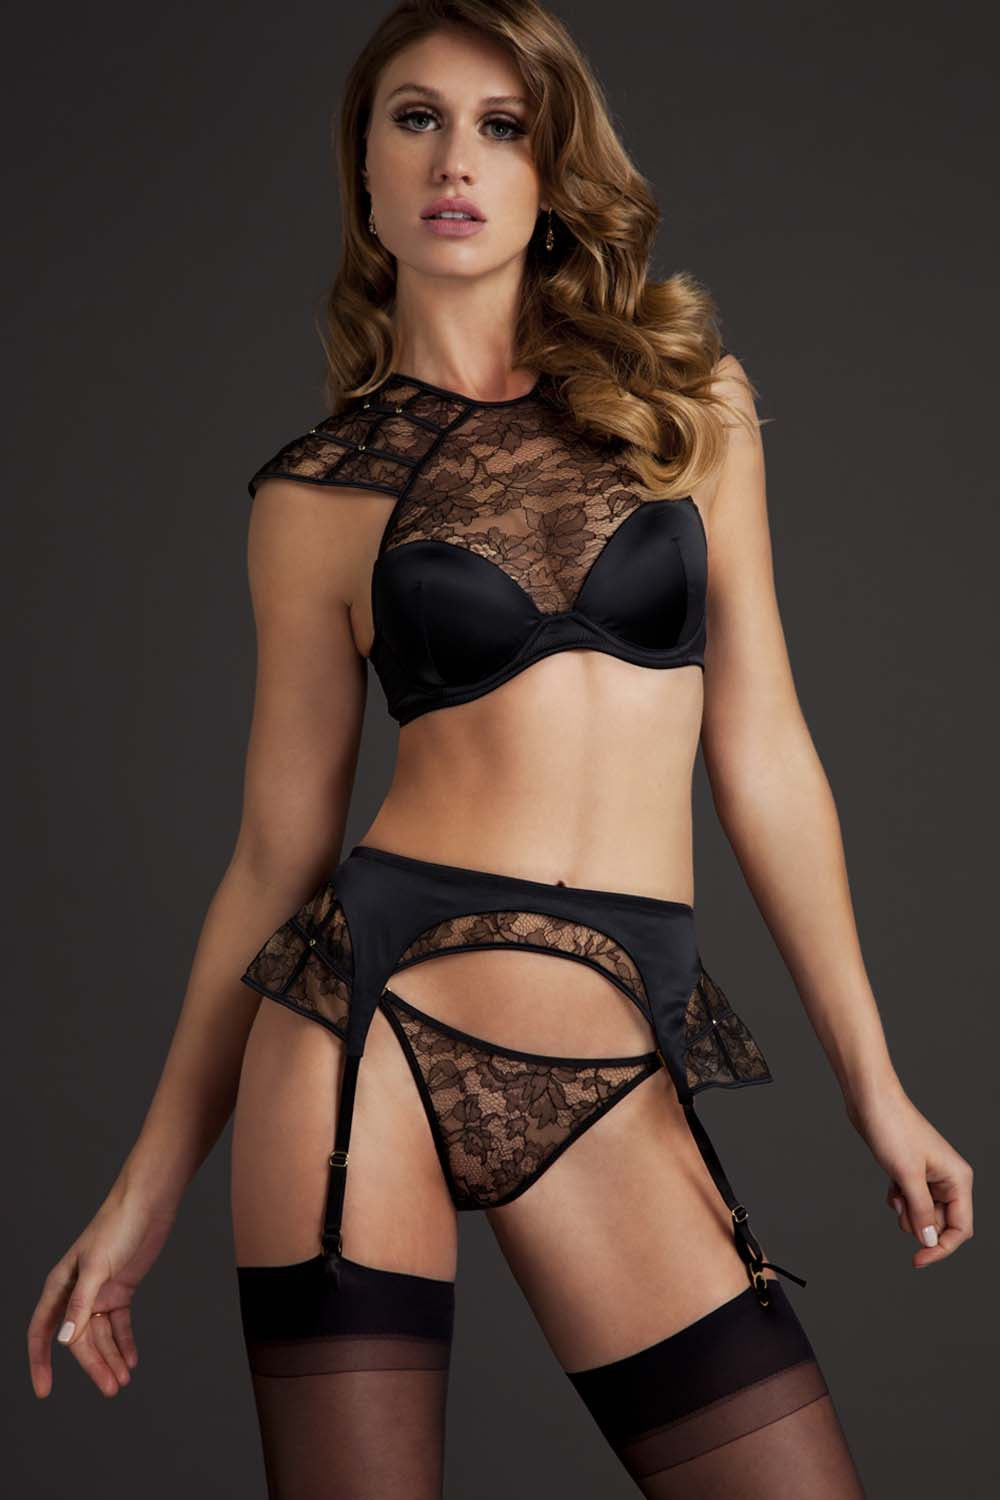 Luxury lingerie set with sheer black lace high neck bra, suspender and thong by Tatu Couture